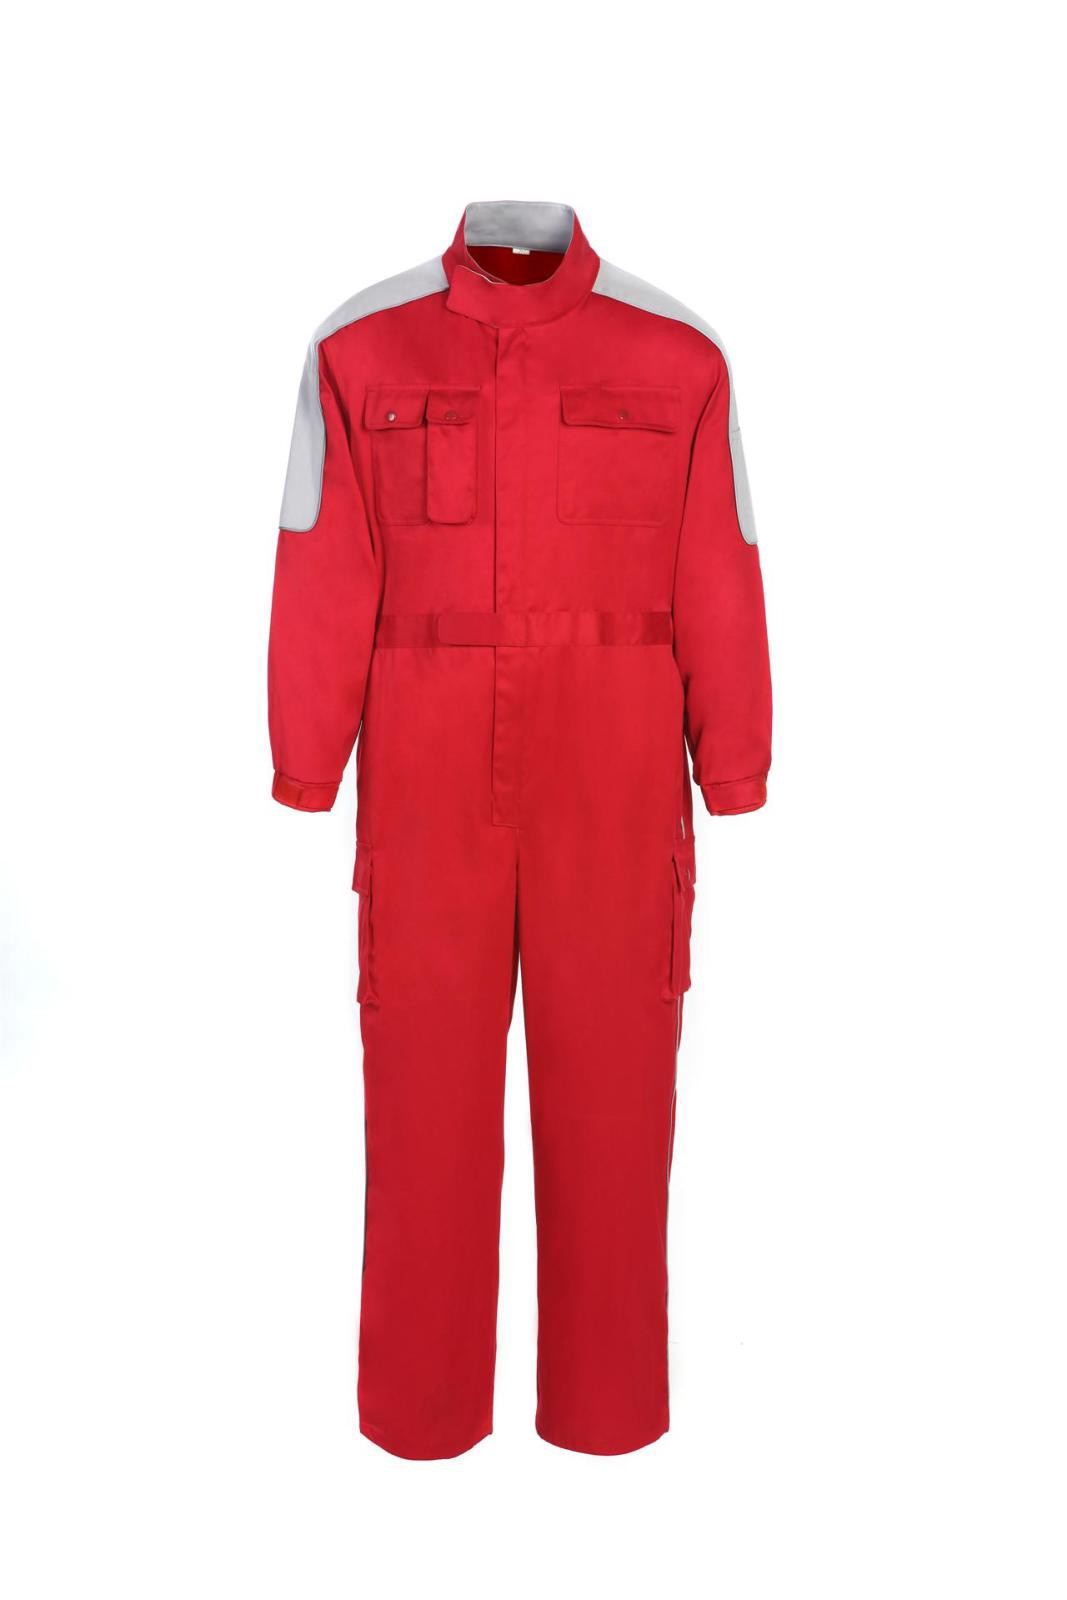 YiFanNuo presents its extensive range of special protective workwears and business suits